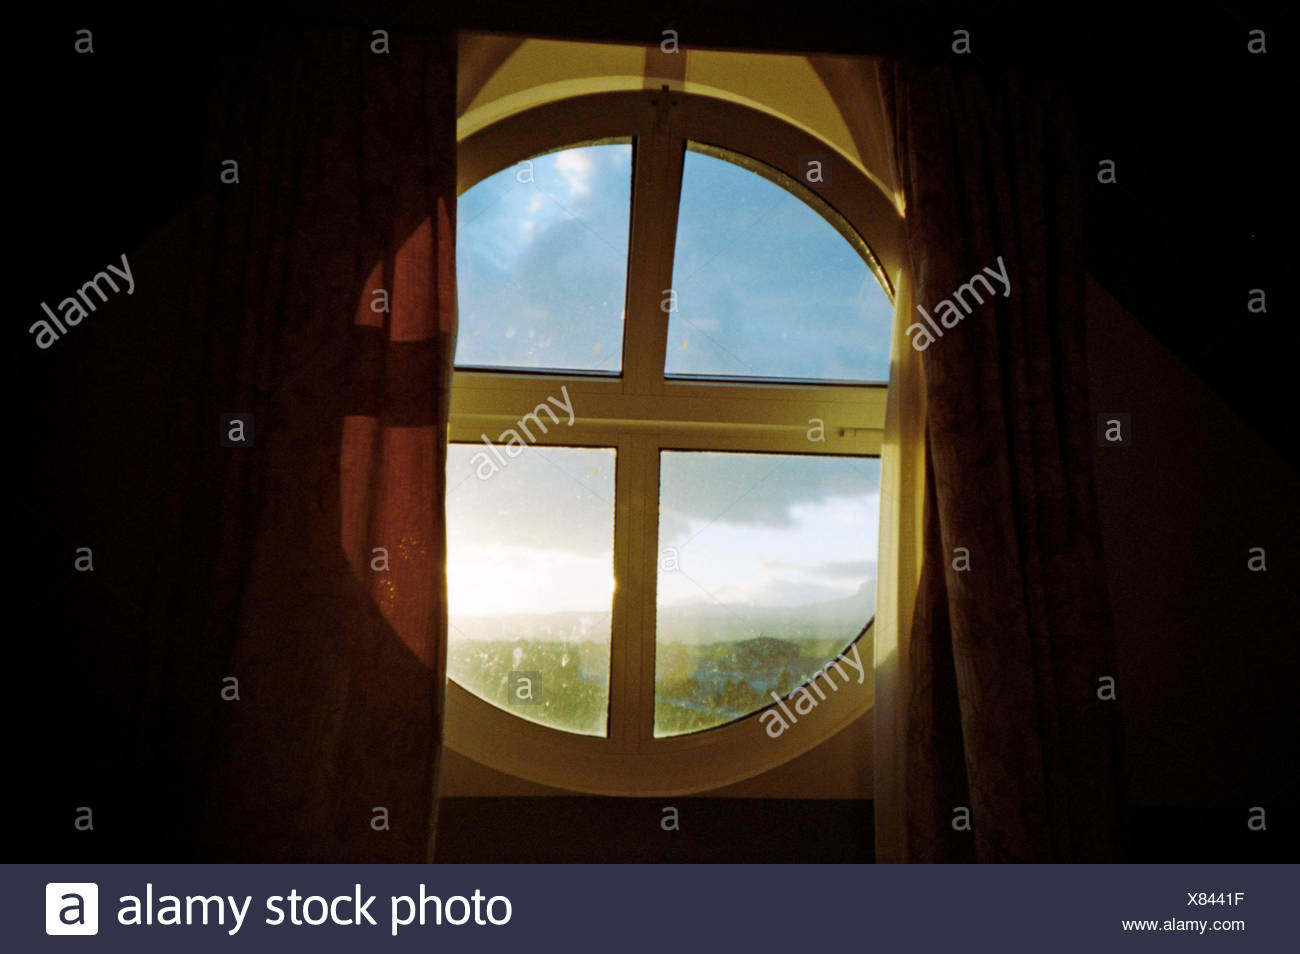 Circular Window Partially Covered With Curtain - Stock Image